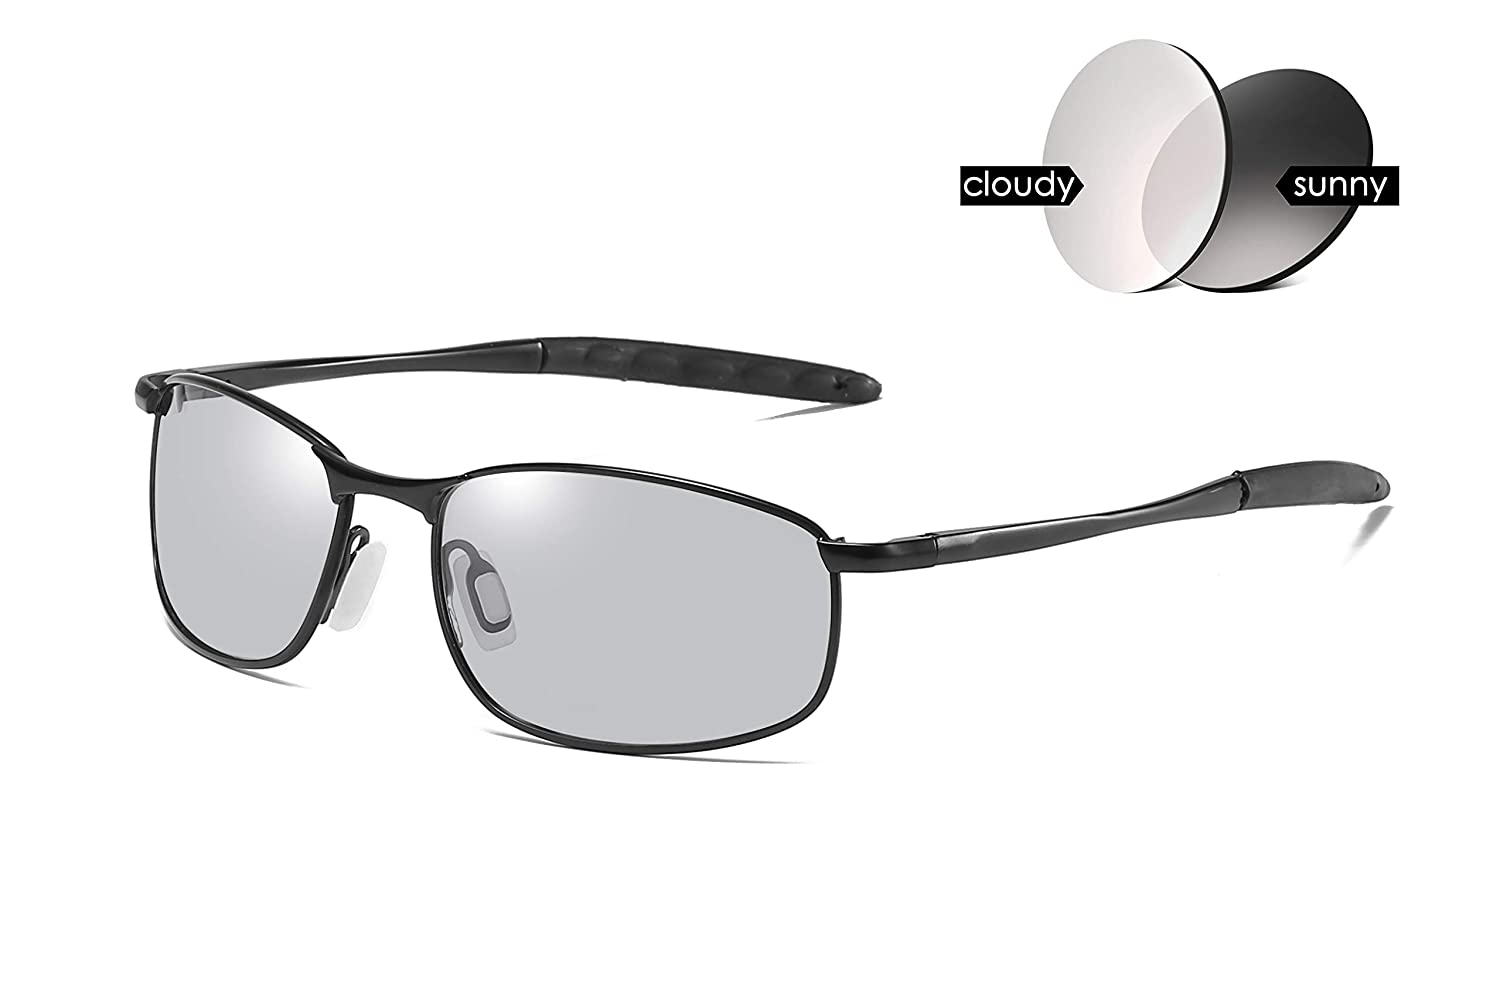 d6bc5ce0d85 Amazon.com  FEISEDY Classic Polarized Photochromic Sunglasses Driving  Photosensitive Glasses B2444  Clothing